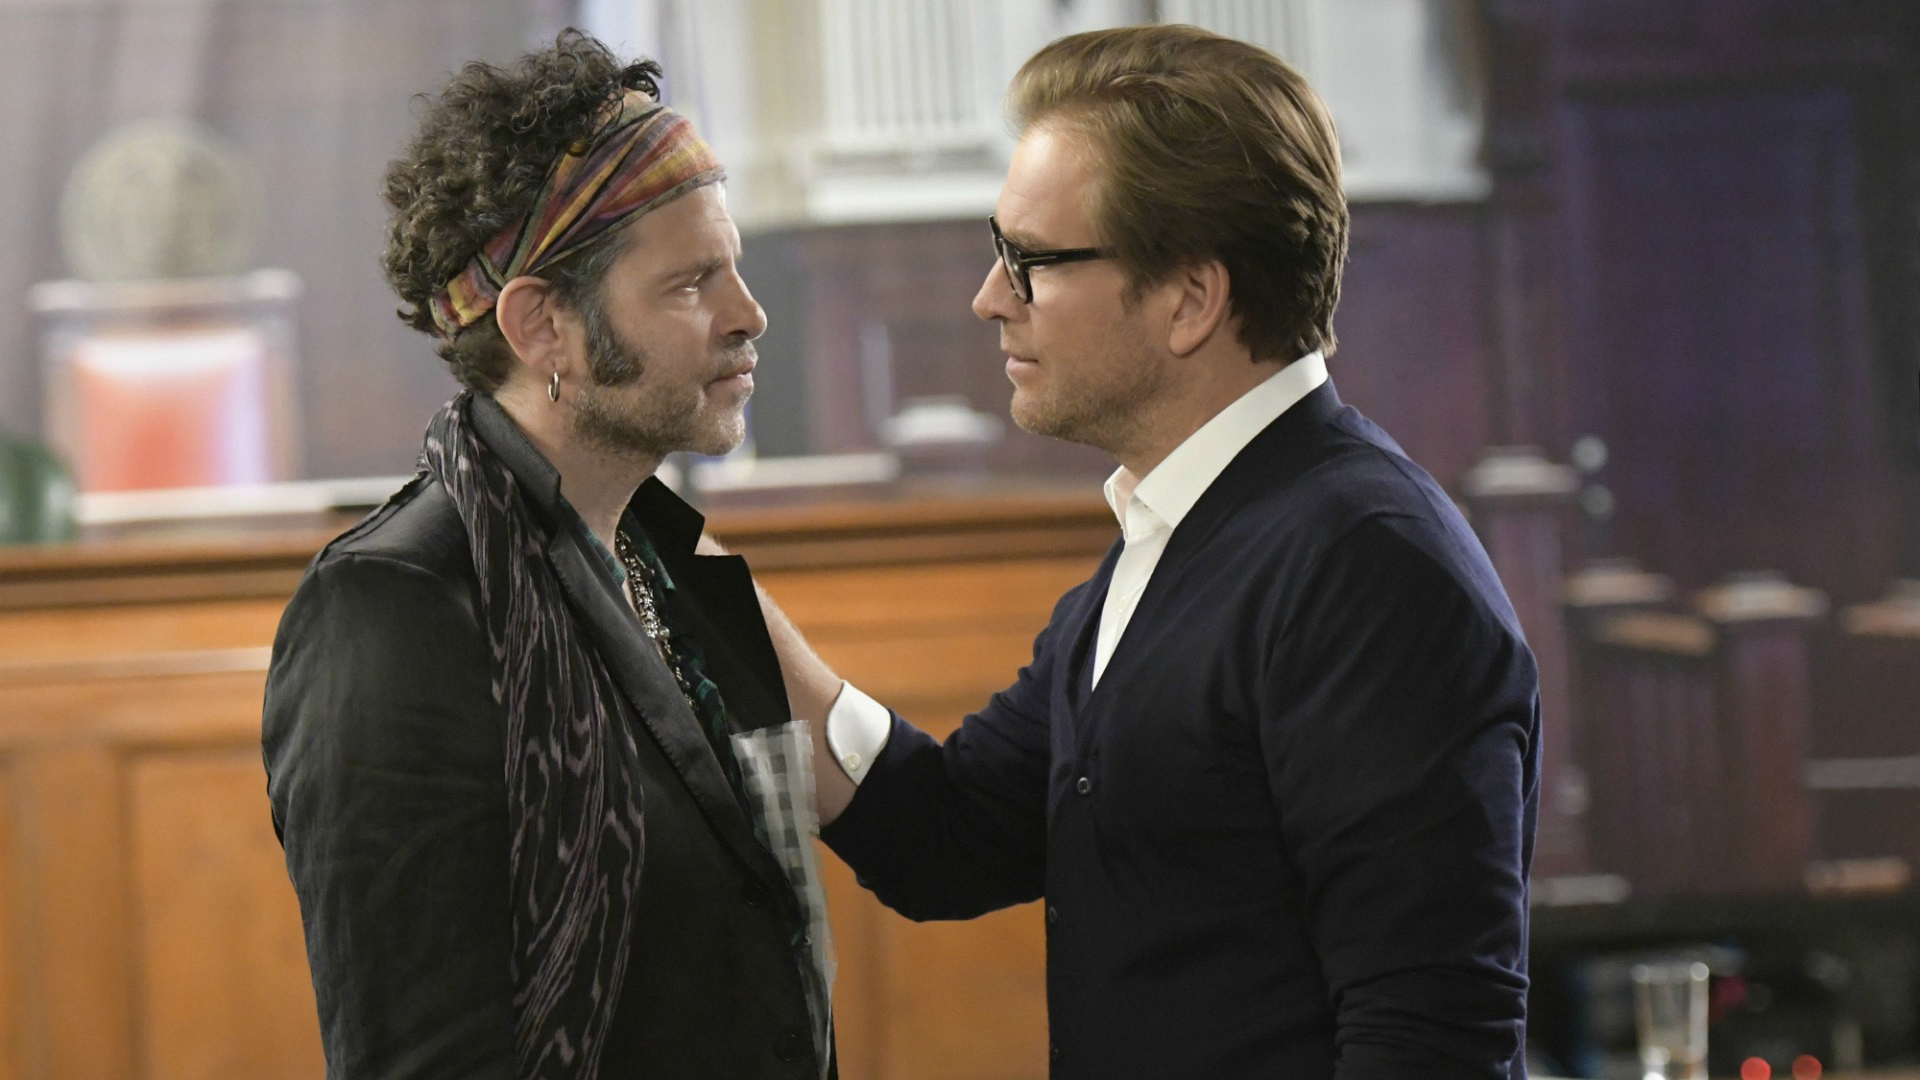 Dr. Bull preps a client before sending him in front of another mirror jury.